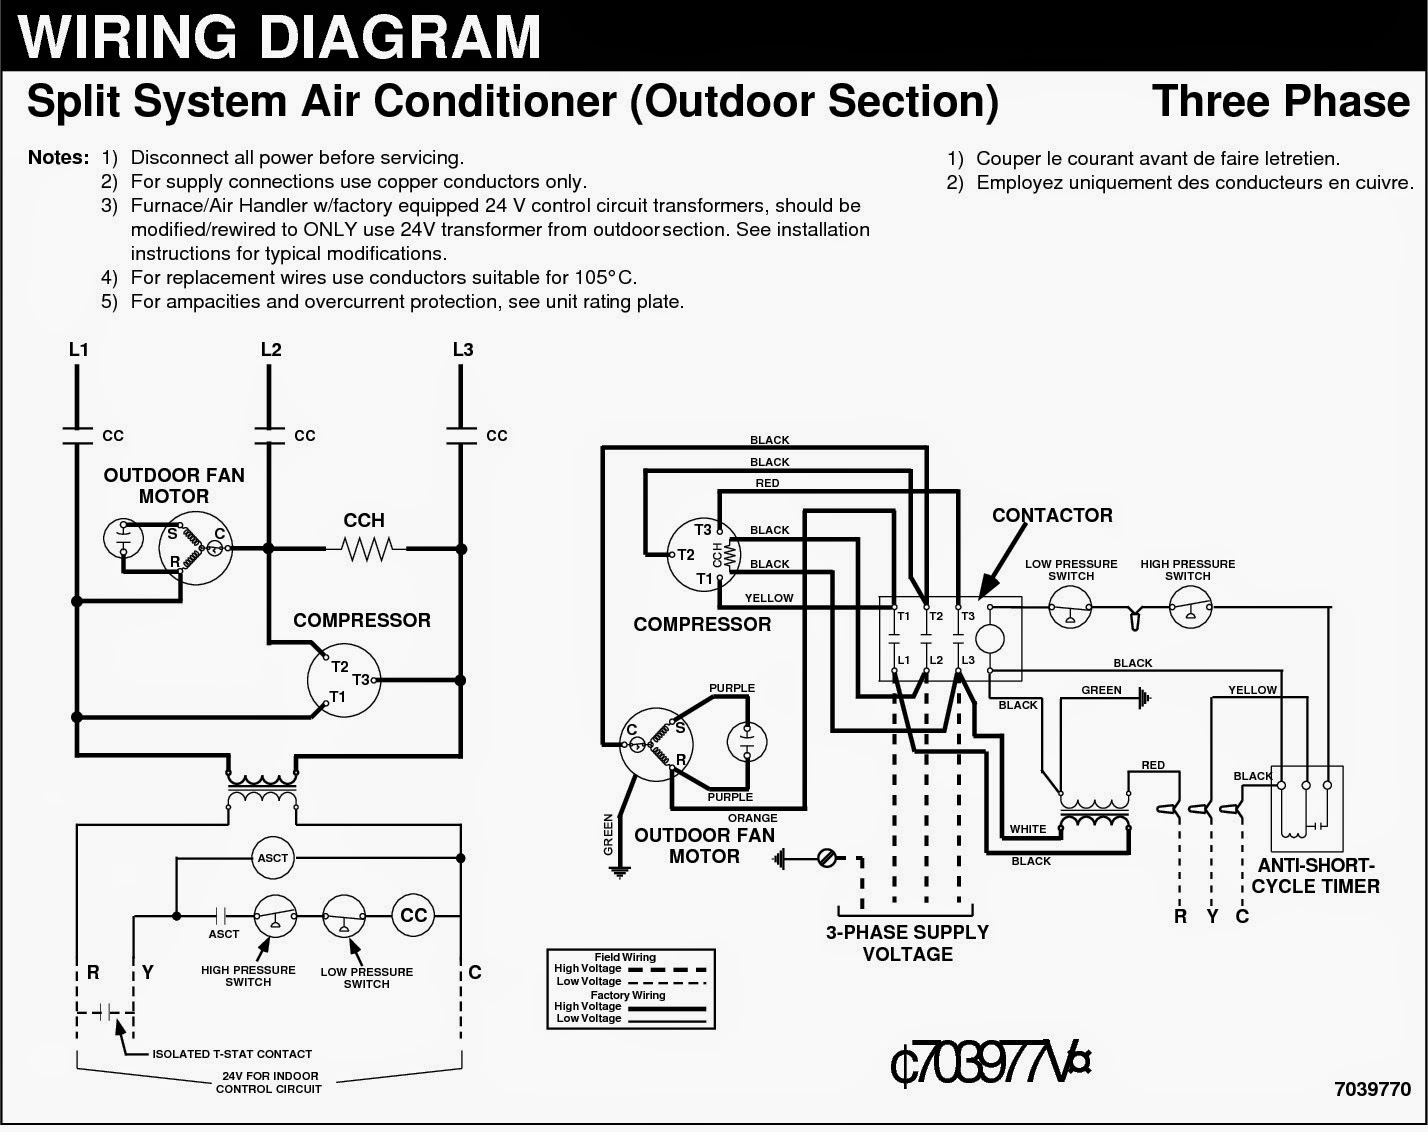 House Ac Wiring Diagram Simple Schema Circuit Breaker Box Home Todays Basic Electrical For